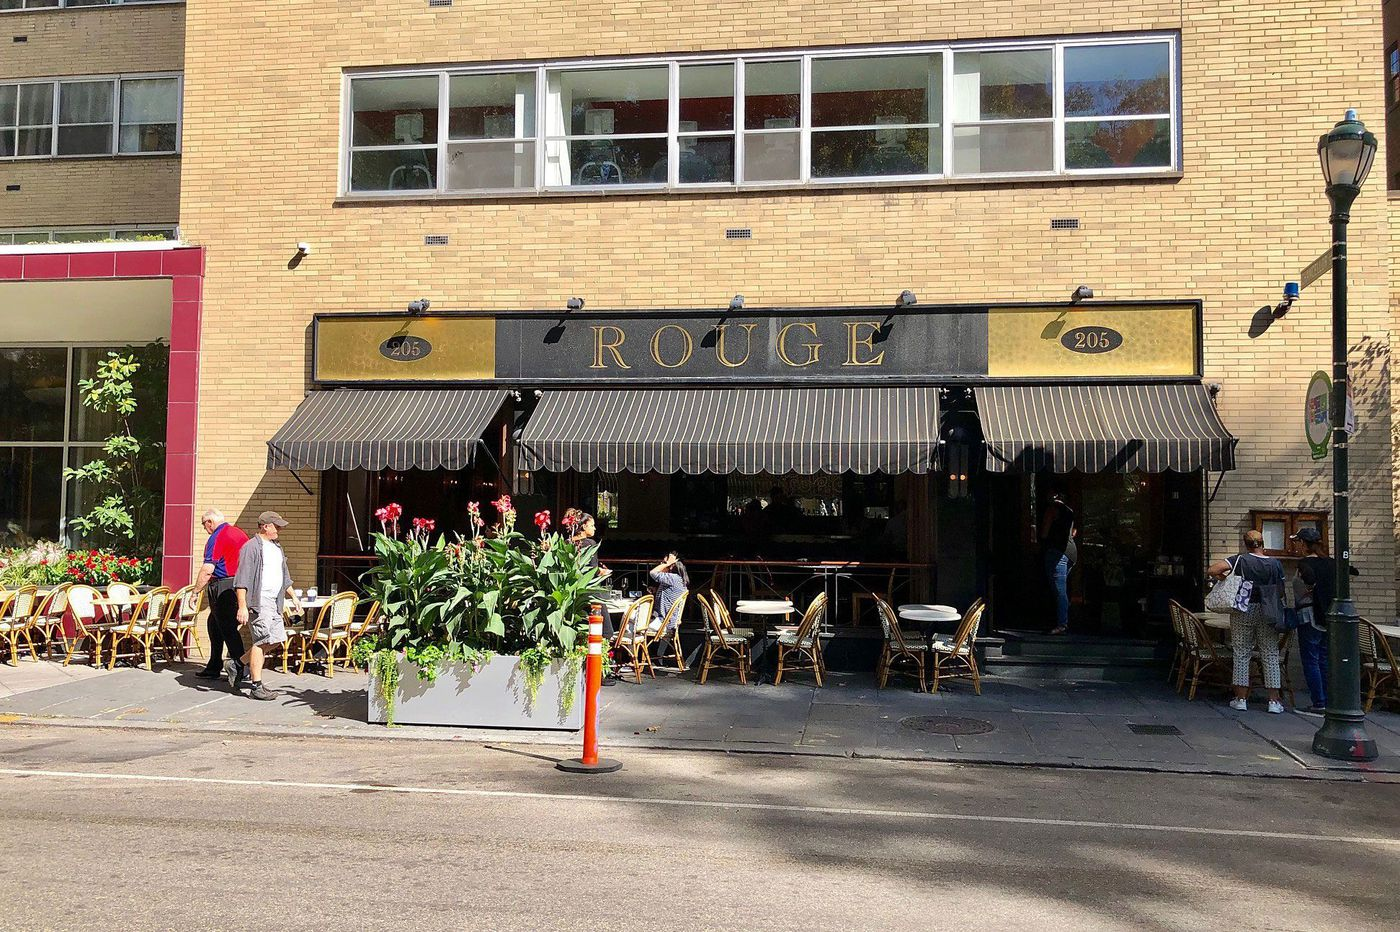 Outdoor seating hits a record high in Philadelphia, but one cafe table has gone missing